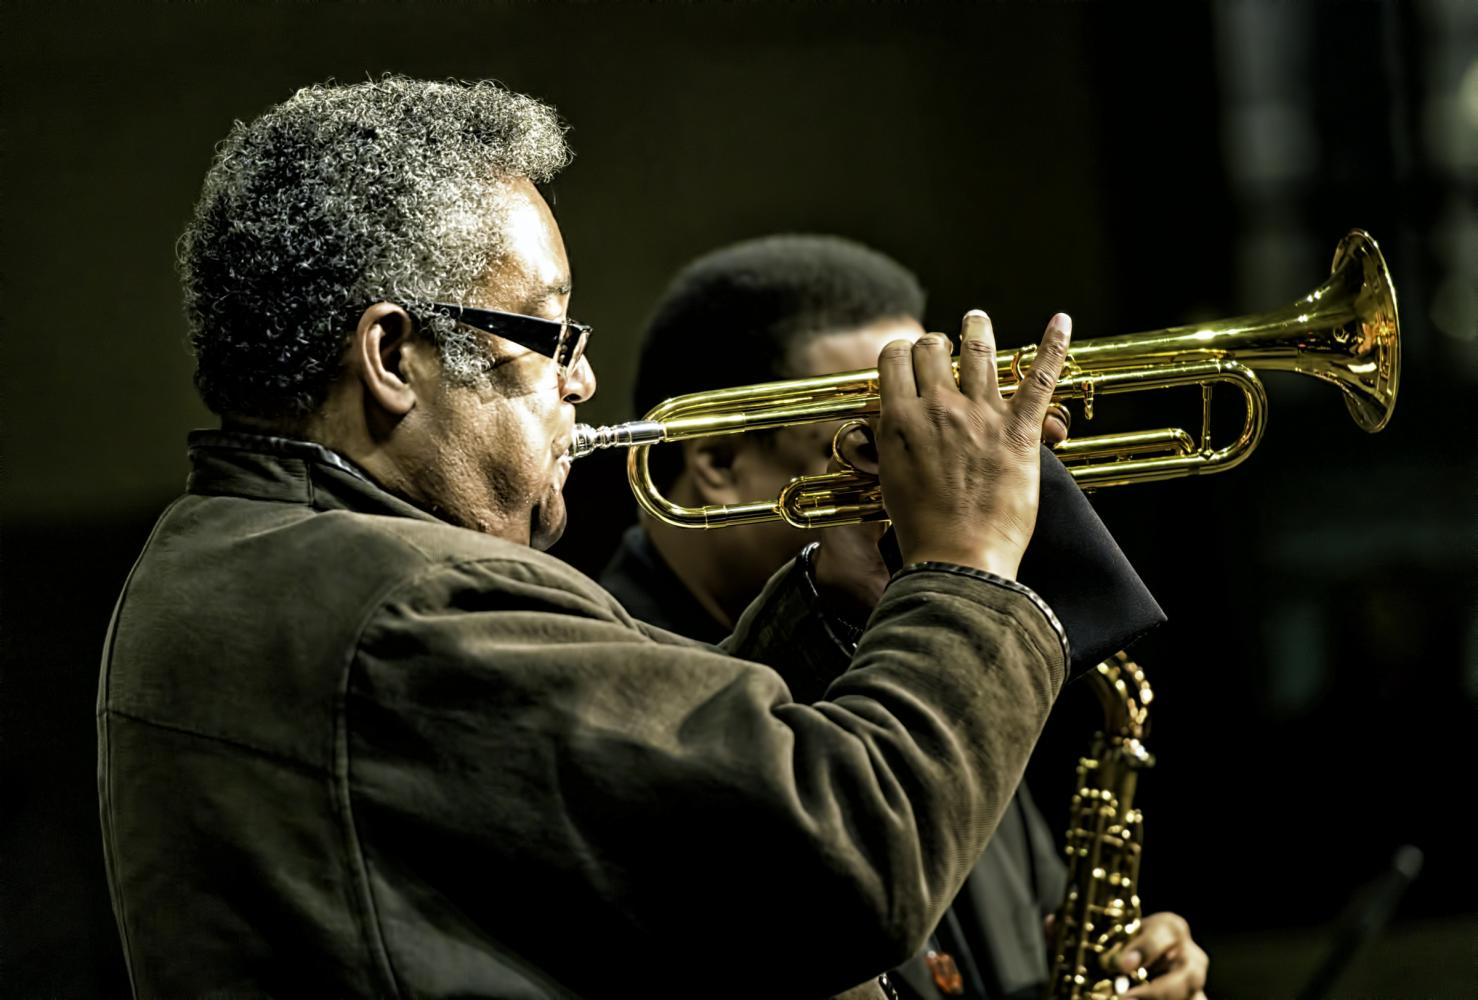 Jon Faddis At The Jazz Legends For Disability Pride At The NYC Winter Jazzfest 2017